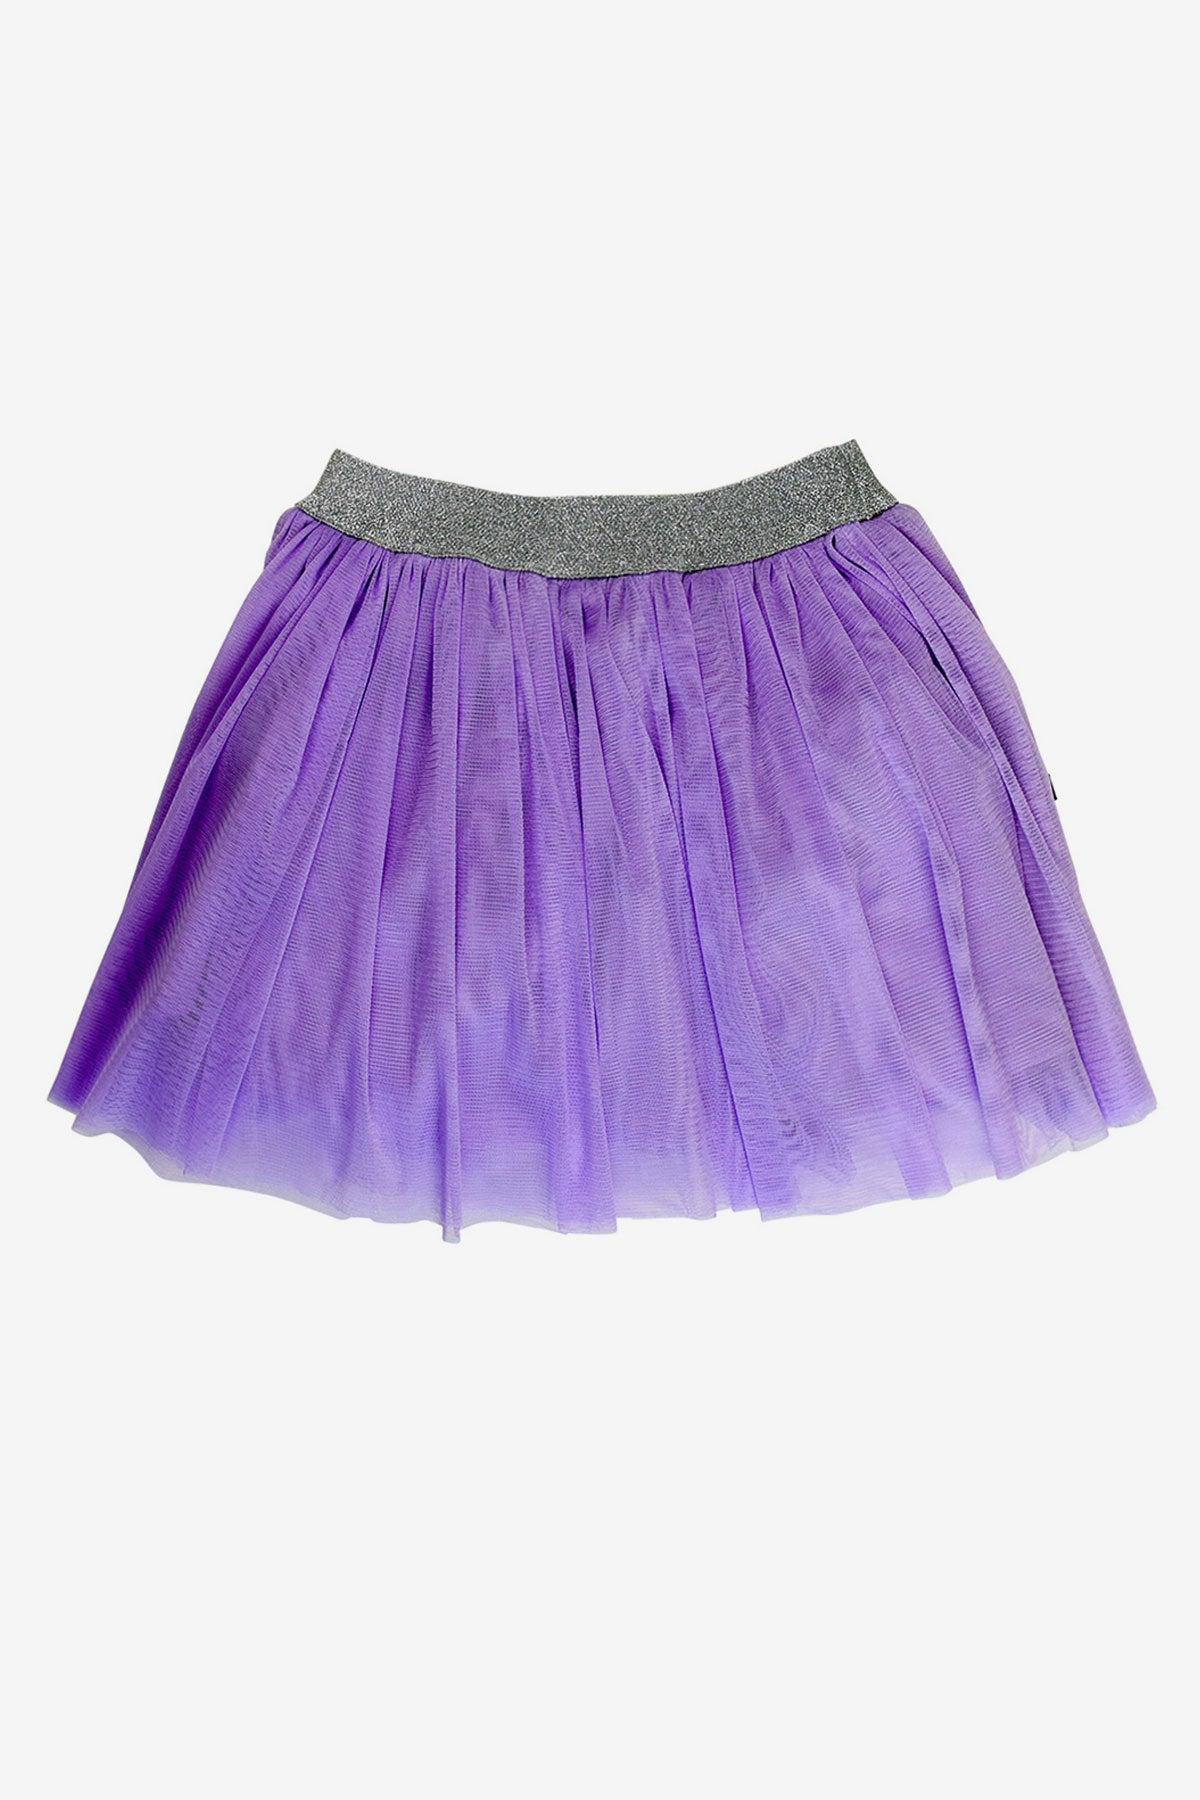 6e1a74d632 Toobydoo Lavender Tulle Skirt - Mini Ruby